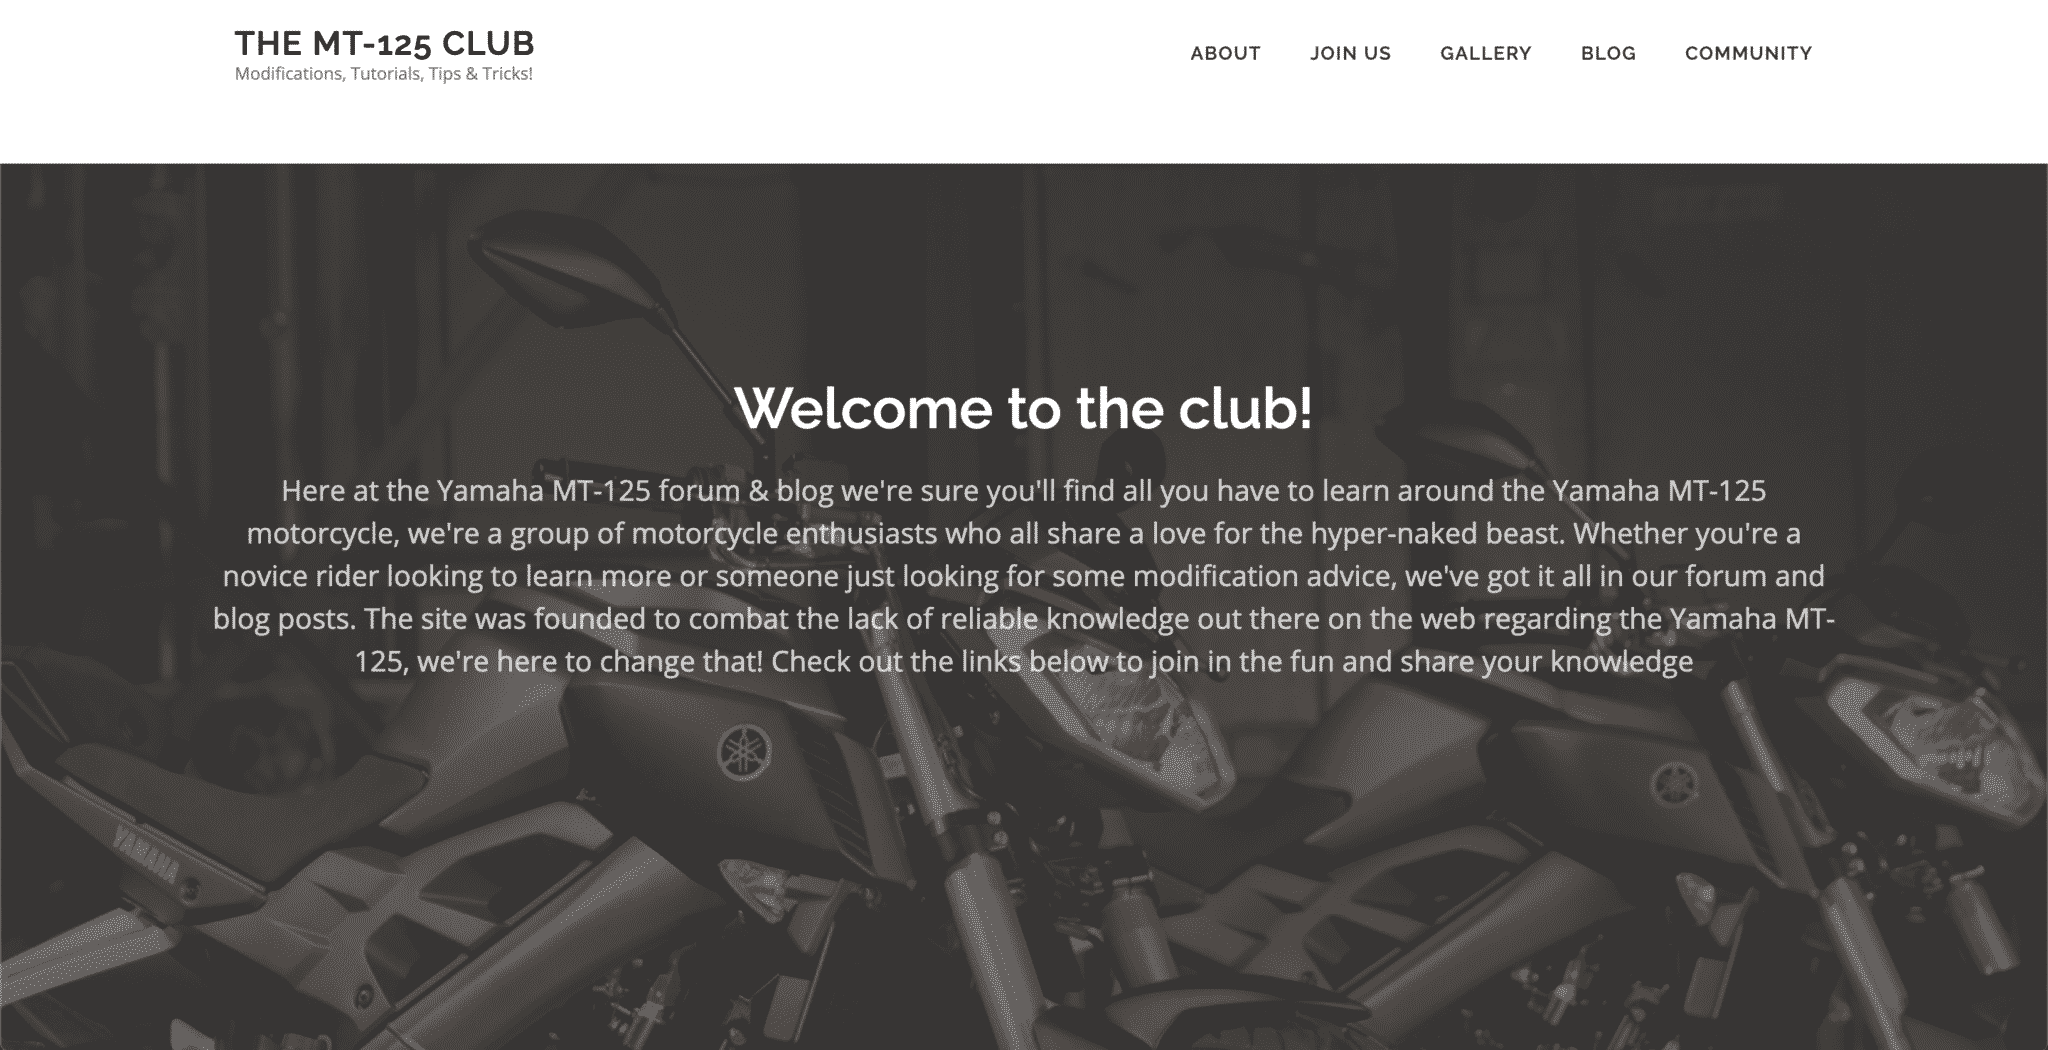 A showcase of a website created for the Yamaha MT-125 club by KY Designs